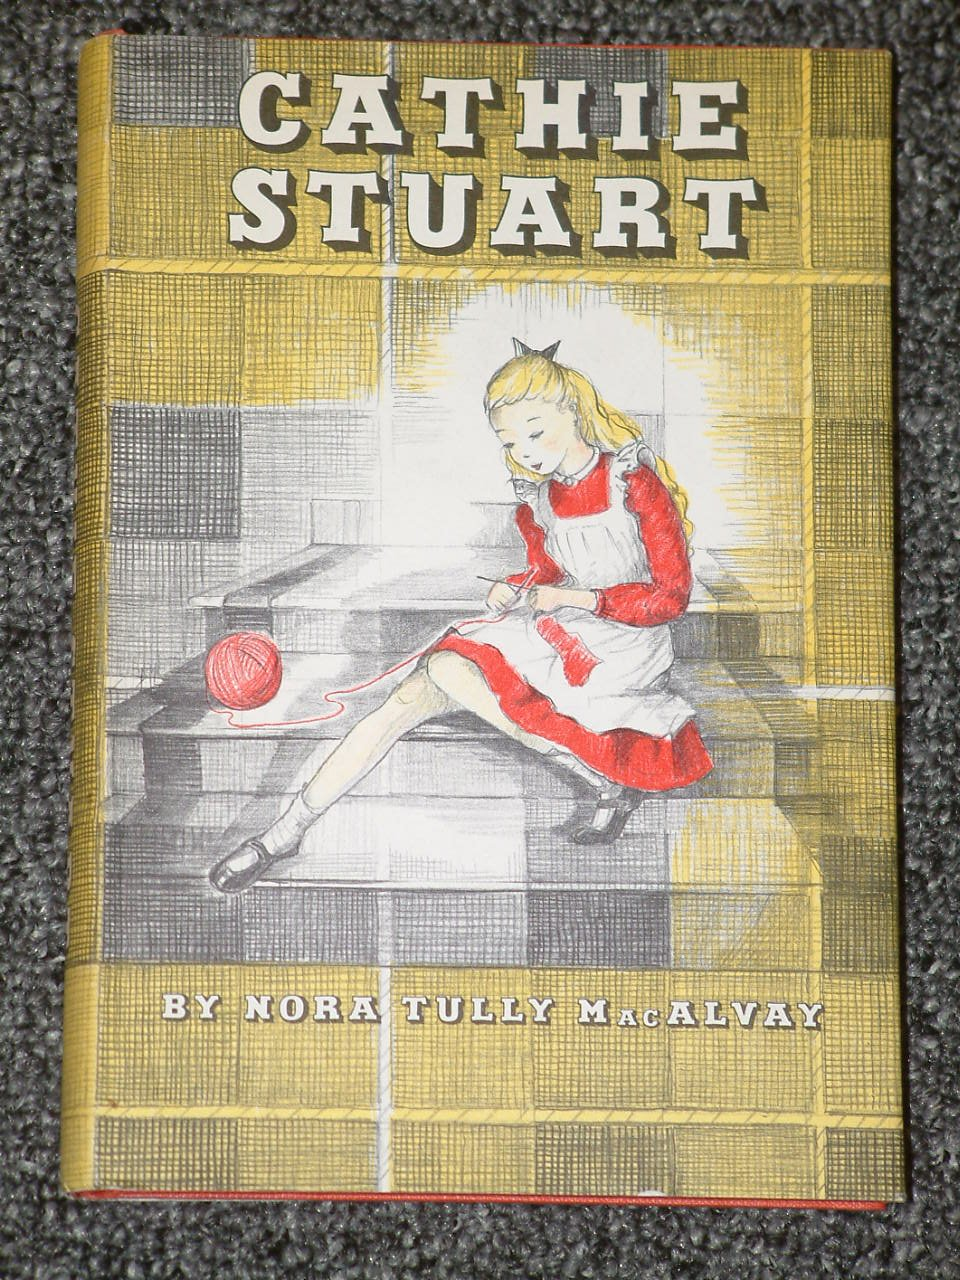 Cathie Stuart by Nora Tuly MacAlvay 1958